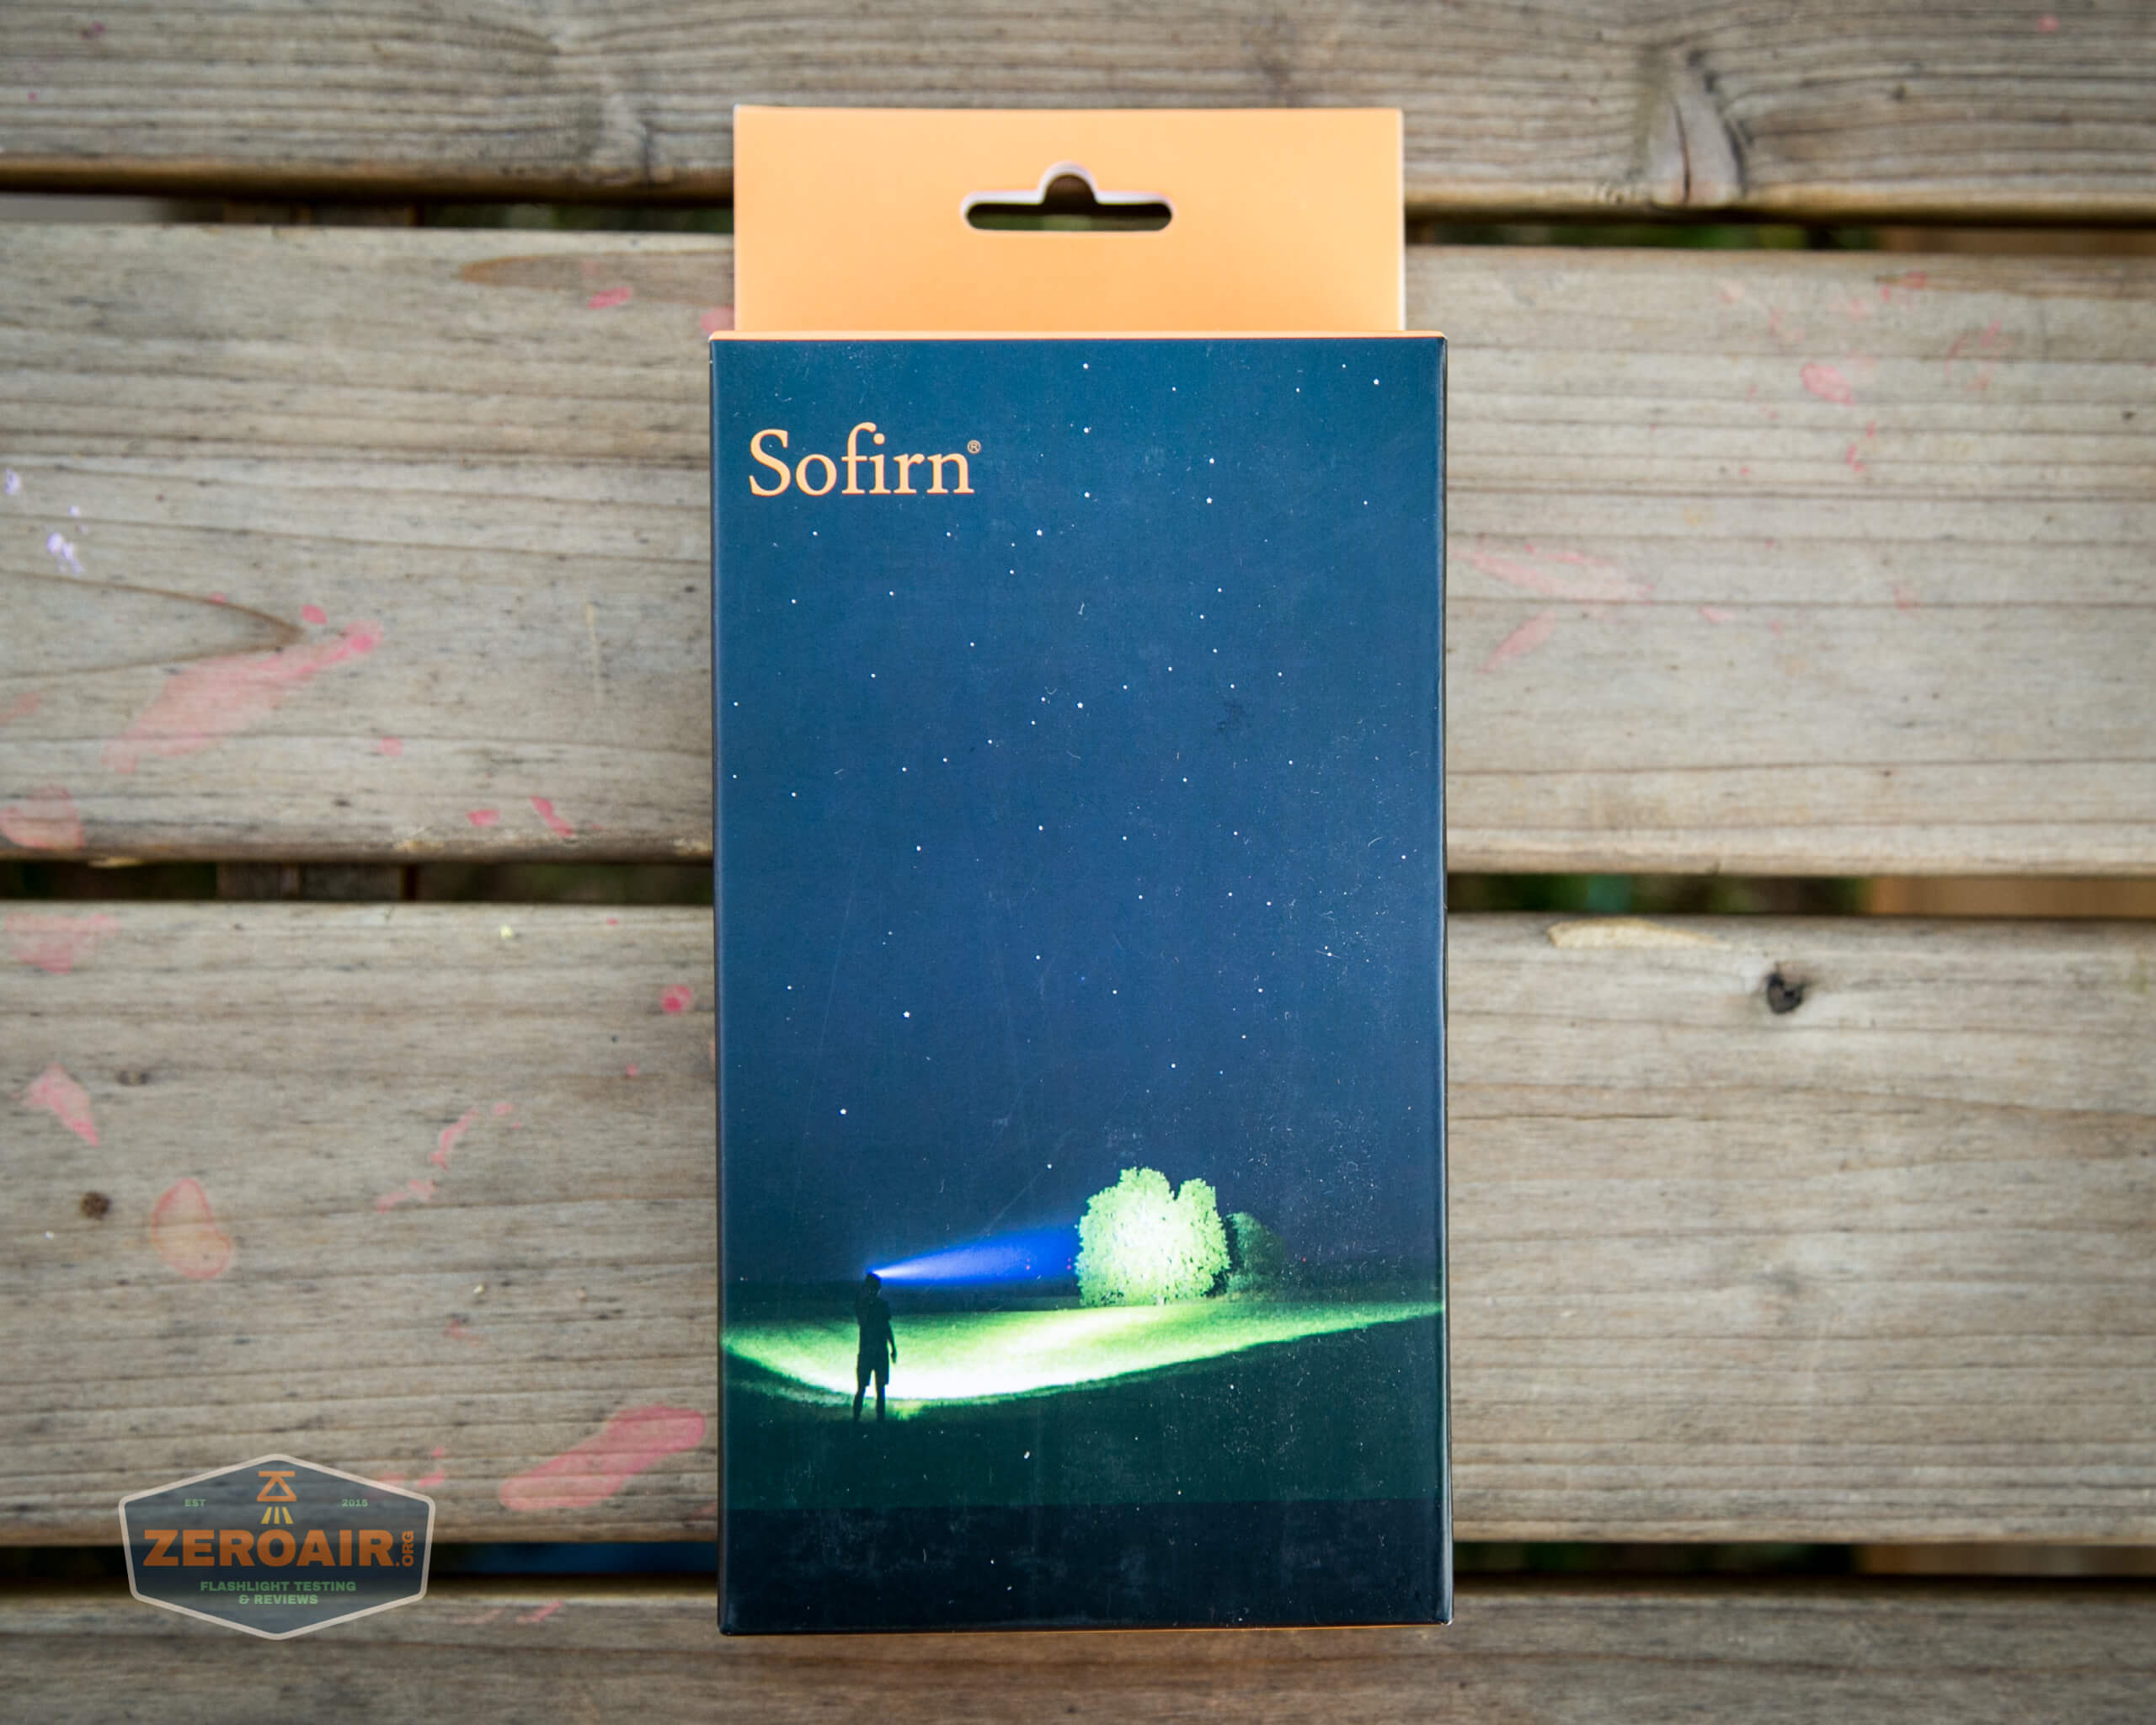 sofirn sc31 pro Andúril 18650 flashlight box